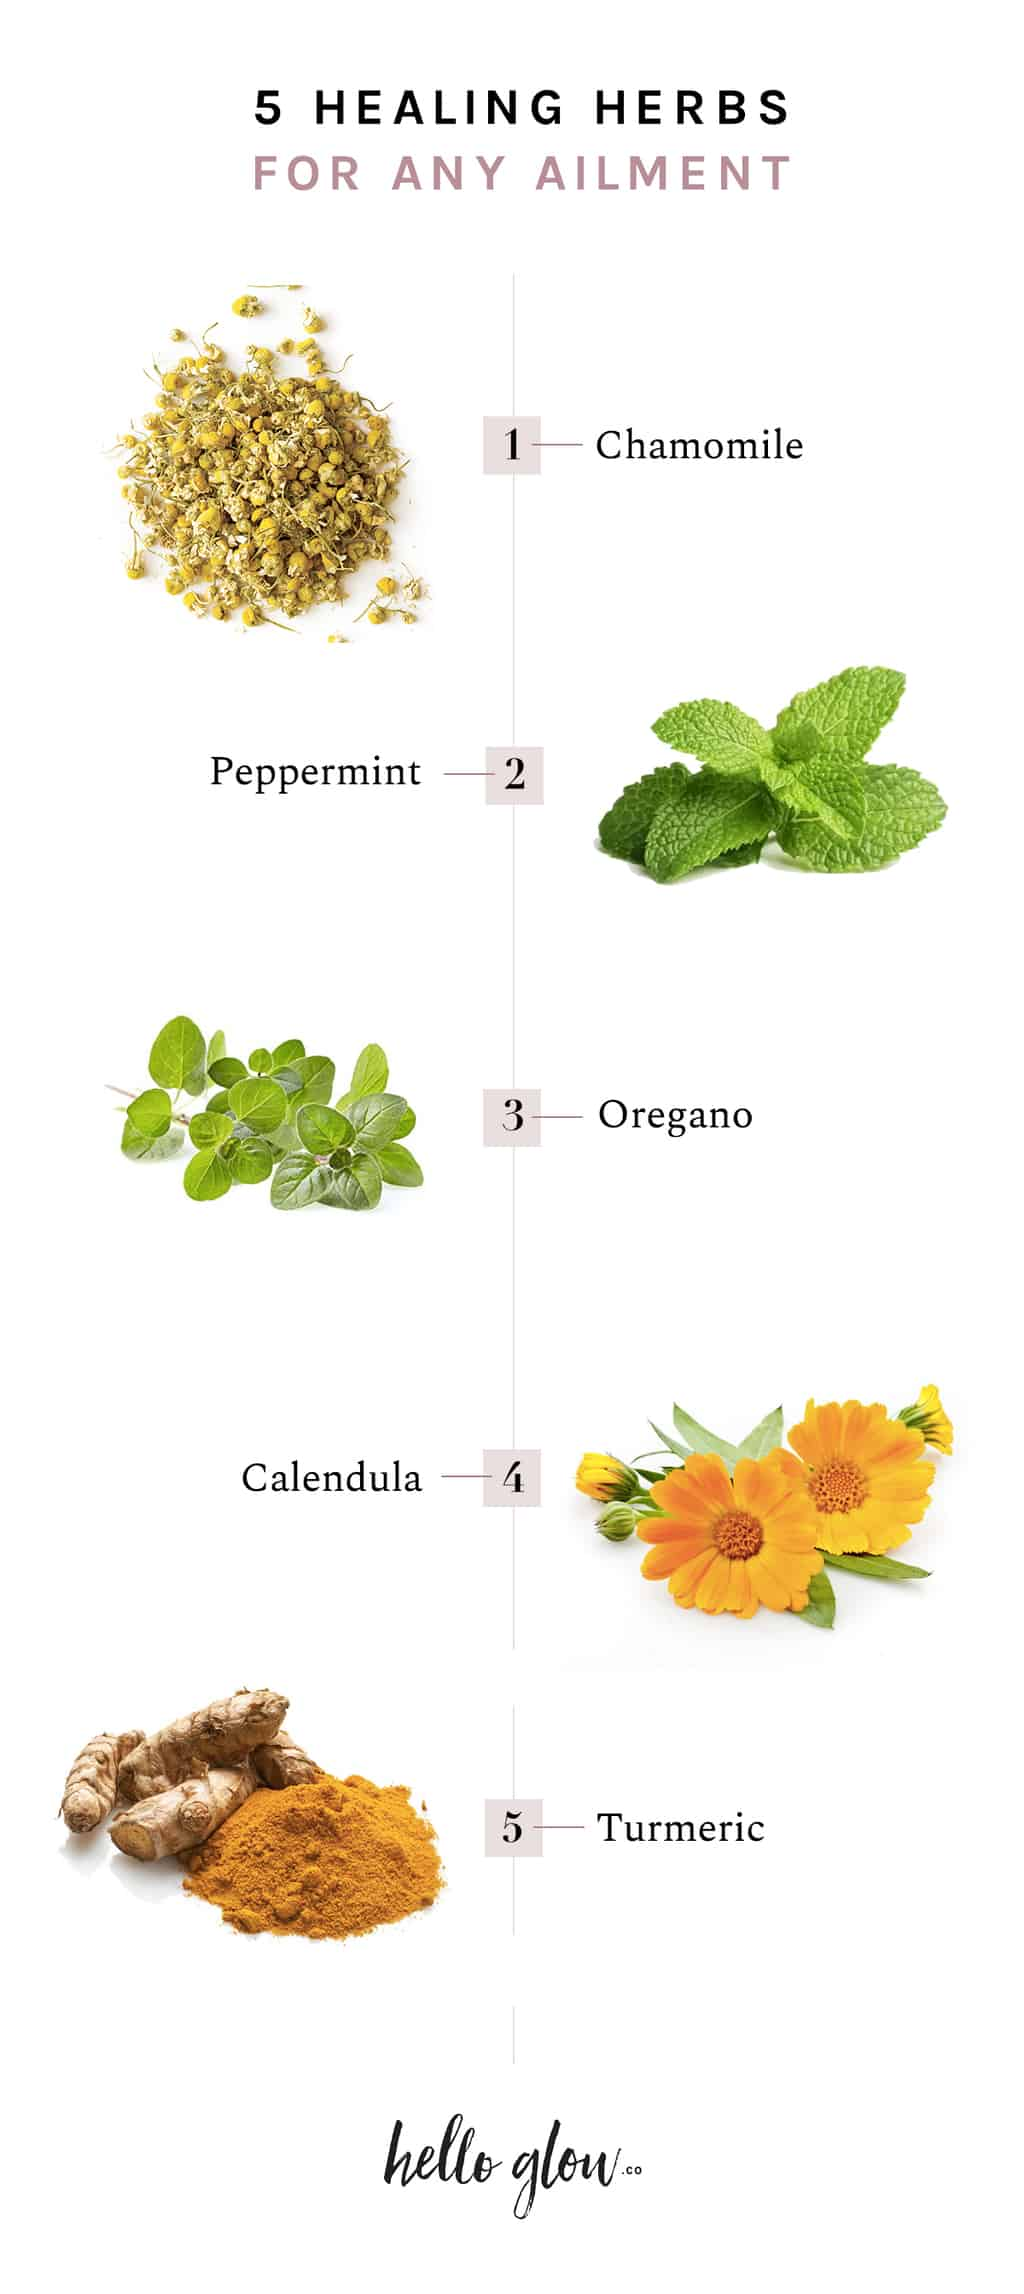 5 Healing Herbs for Any Ailment